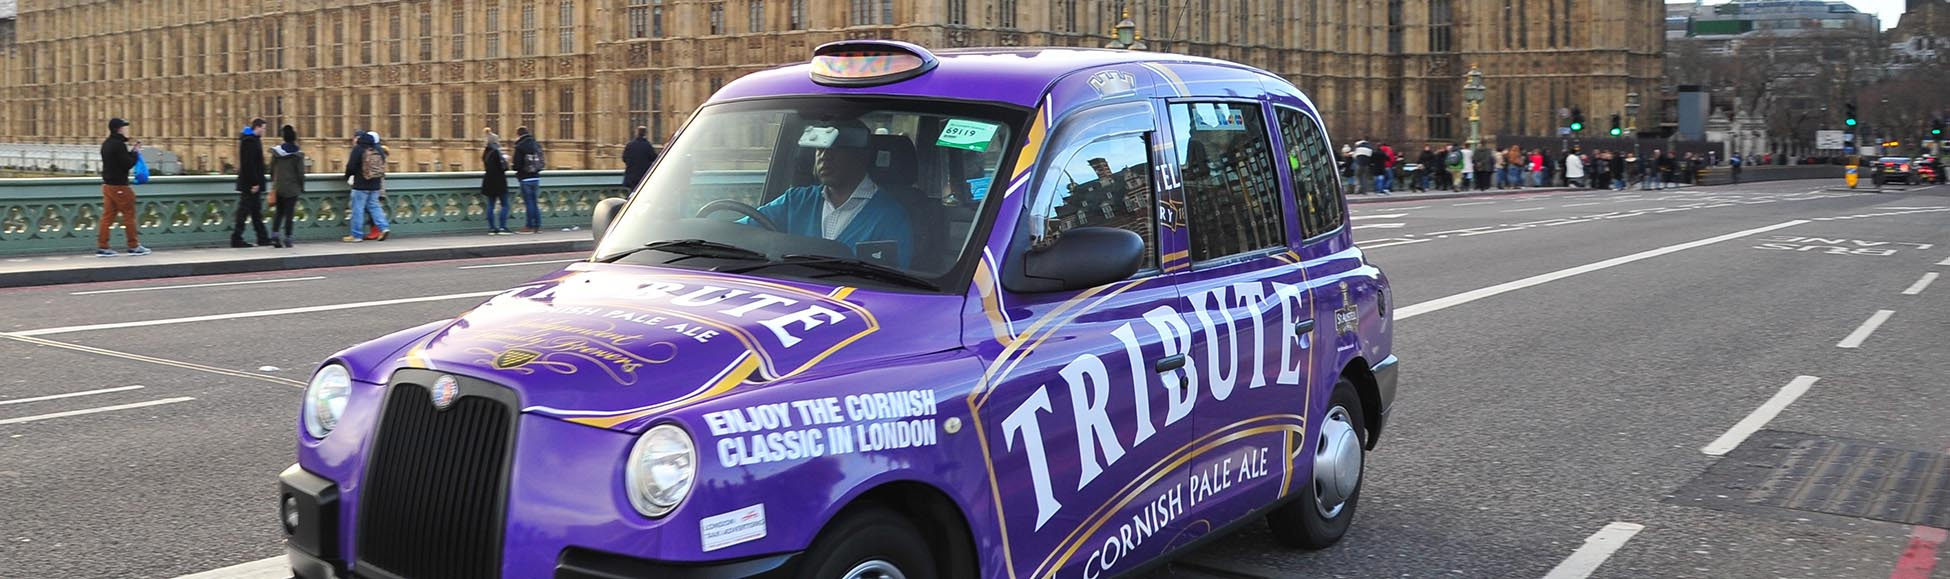 taxi wrapping london